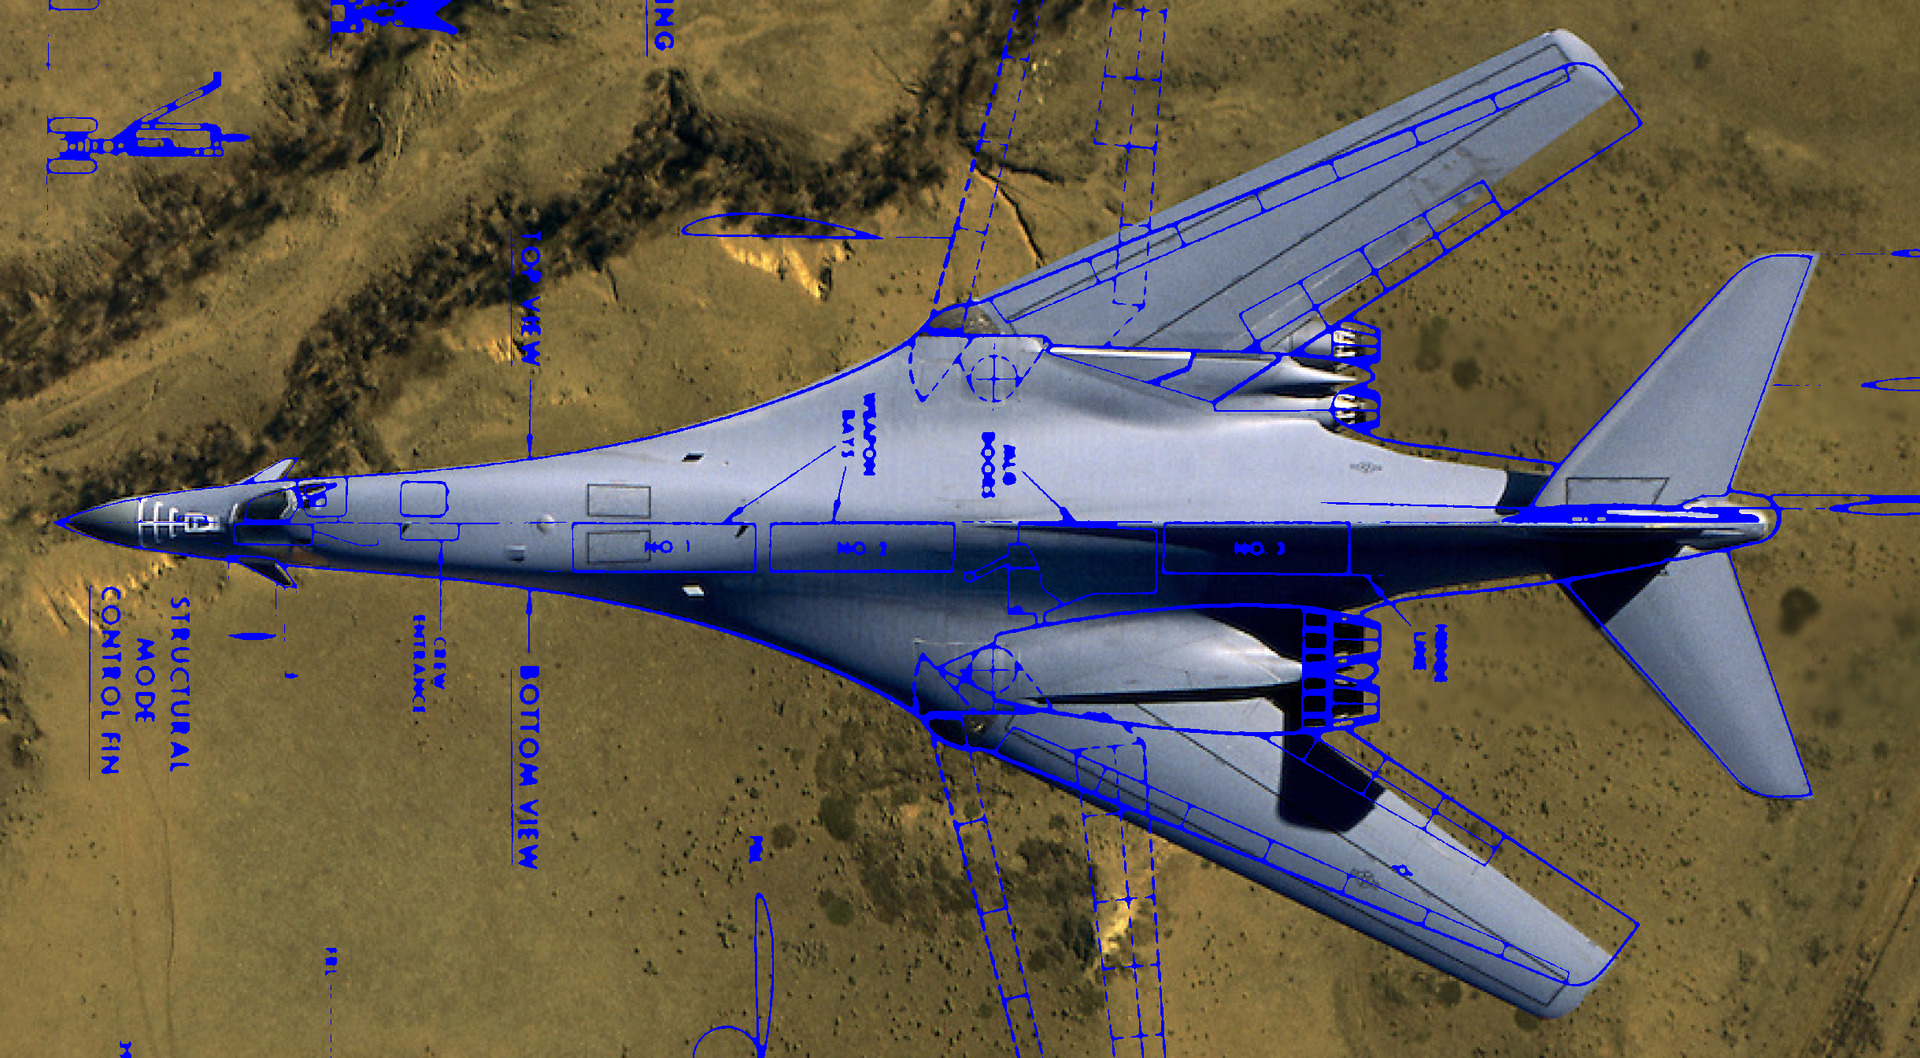 plans_vs_aircraft_top_view.jpg